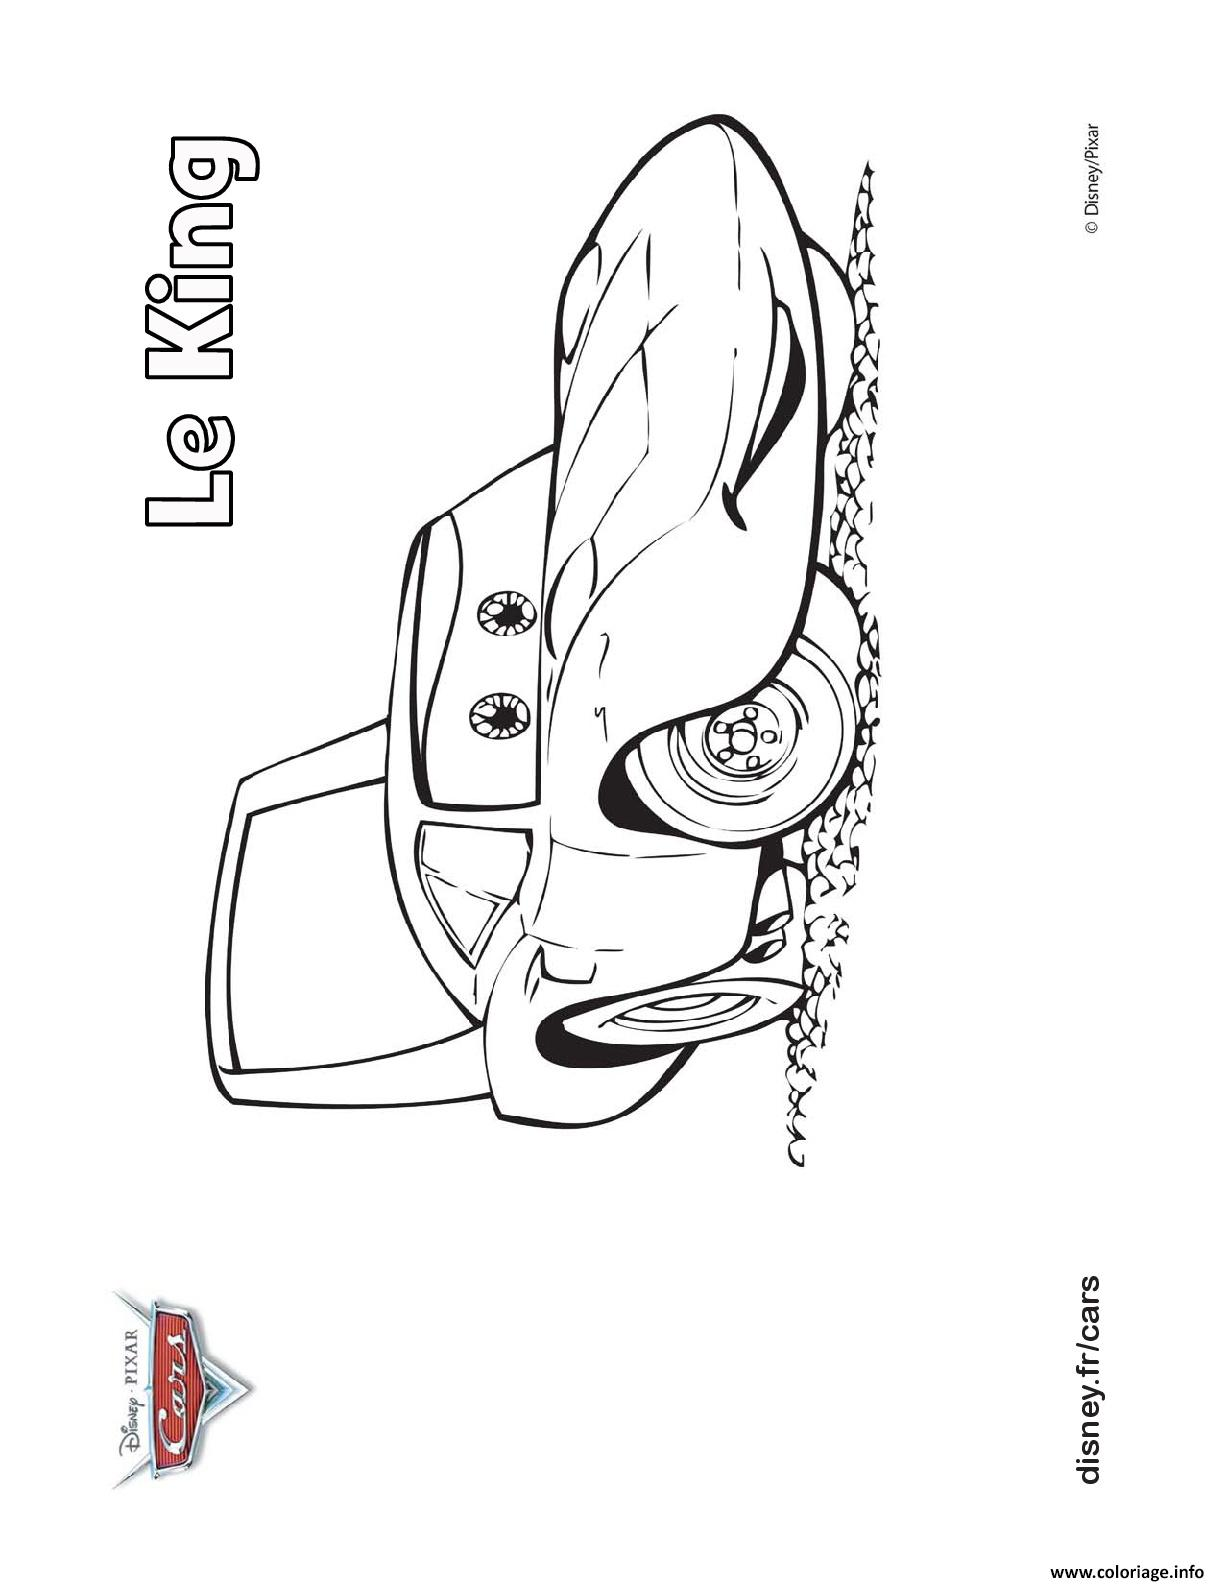 Coloriage Cars Le King.Coloriage Le King Detient 7 Titres Champion De Piston Cup Cars